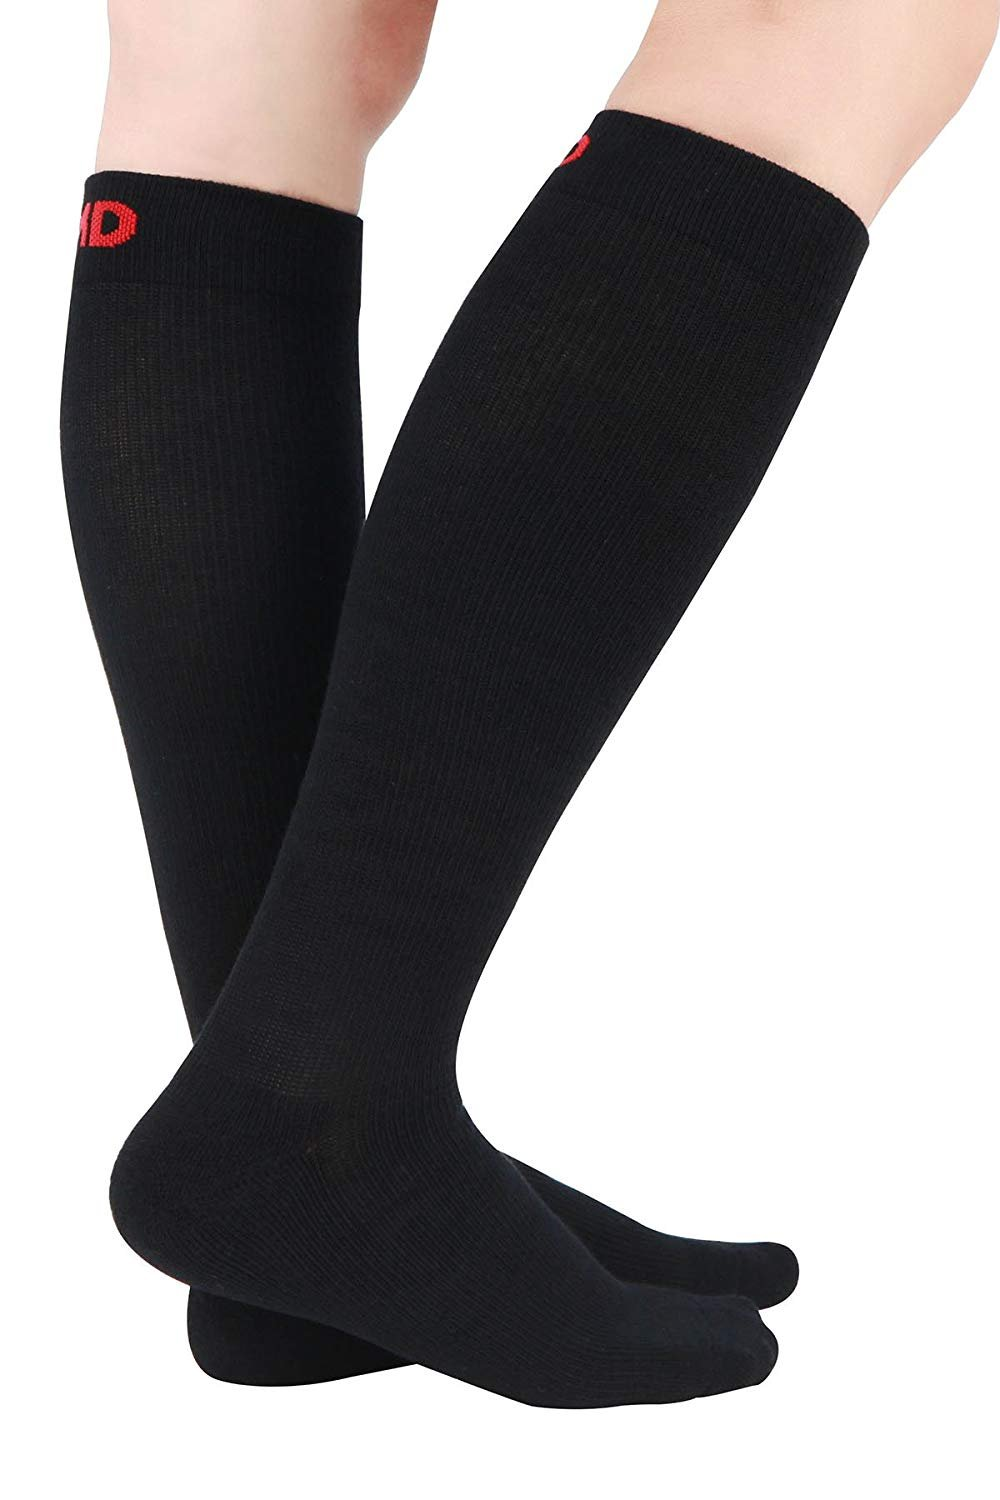 MD 3 Pairs Thick Unisex Moisture Wicking Bamboo Travel Compression Socks 8-15mmHg 13-15 Black